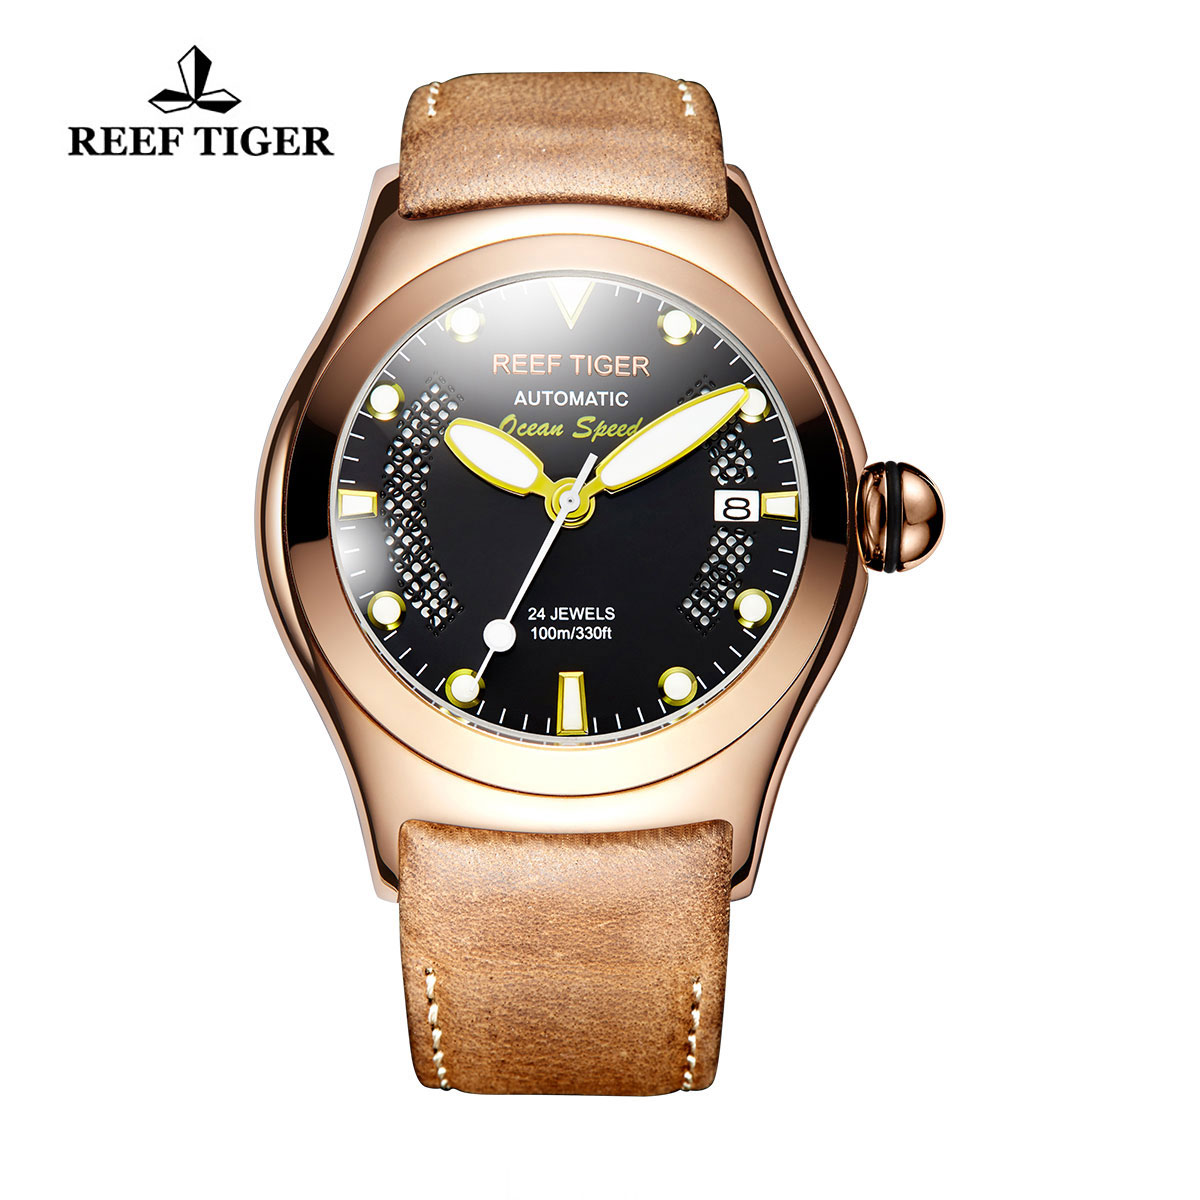 Reef Tiger Ocean Speed Sport Watches Automatic Rose Gold Case Leather Strap Black Dial Watch RGA704-PBBG